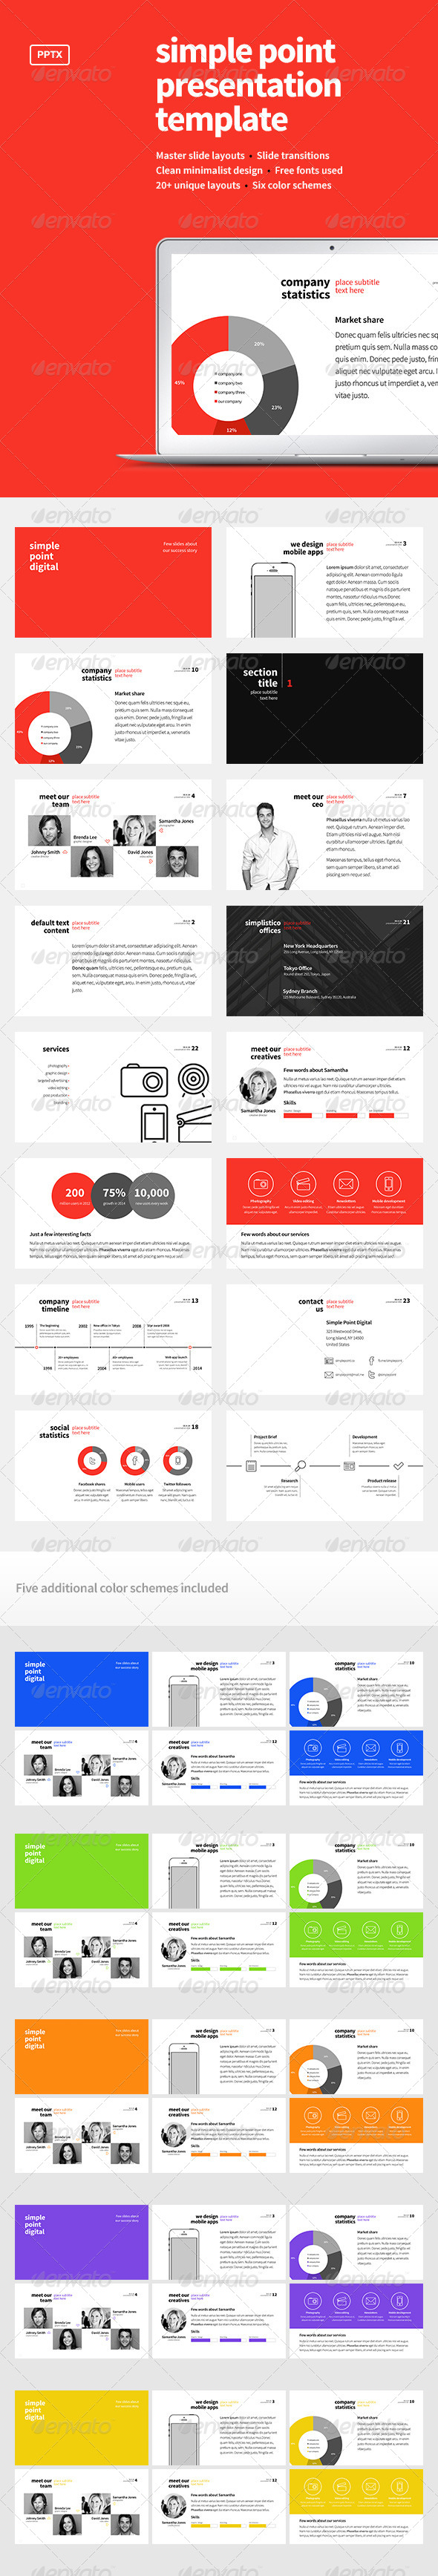 GraphicRiver Simple Point Presentation Template 7644063